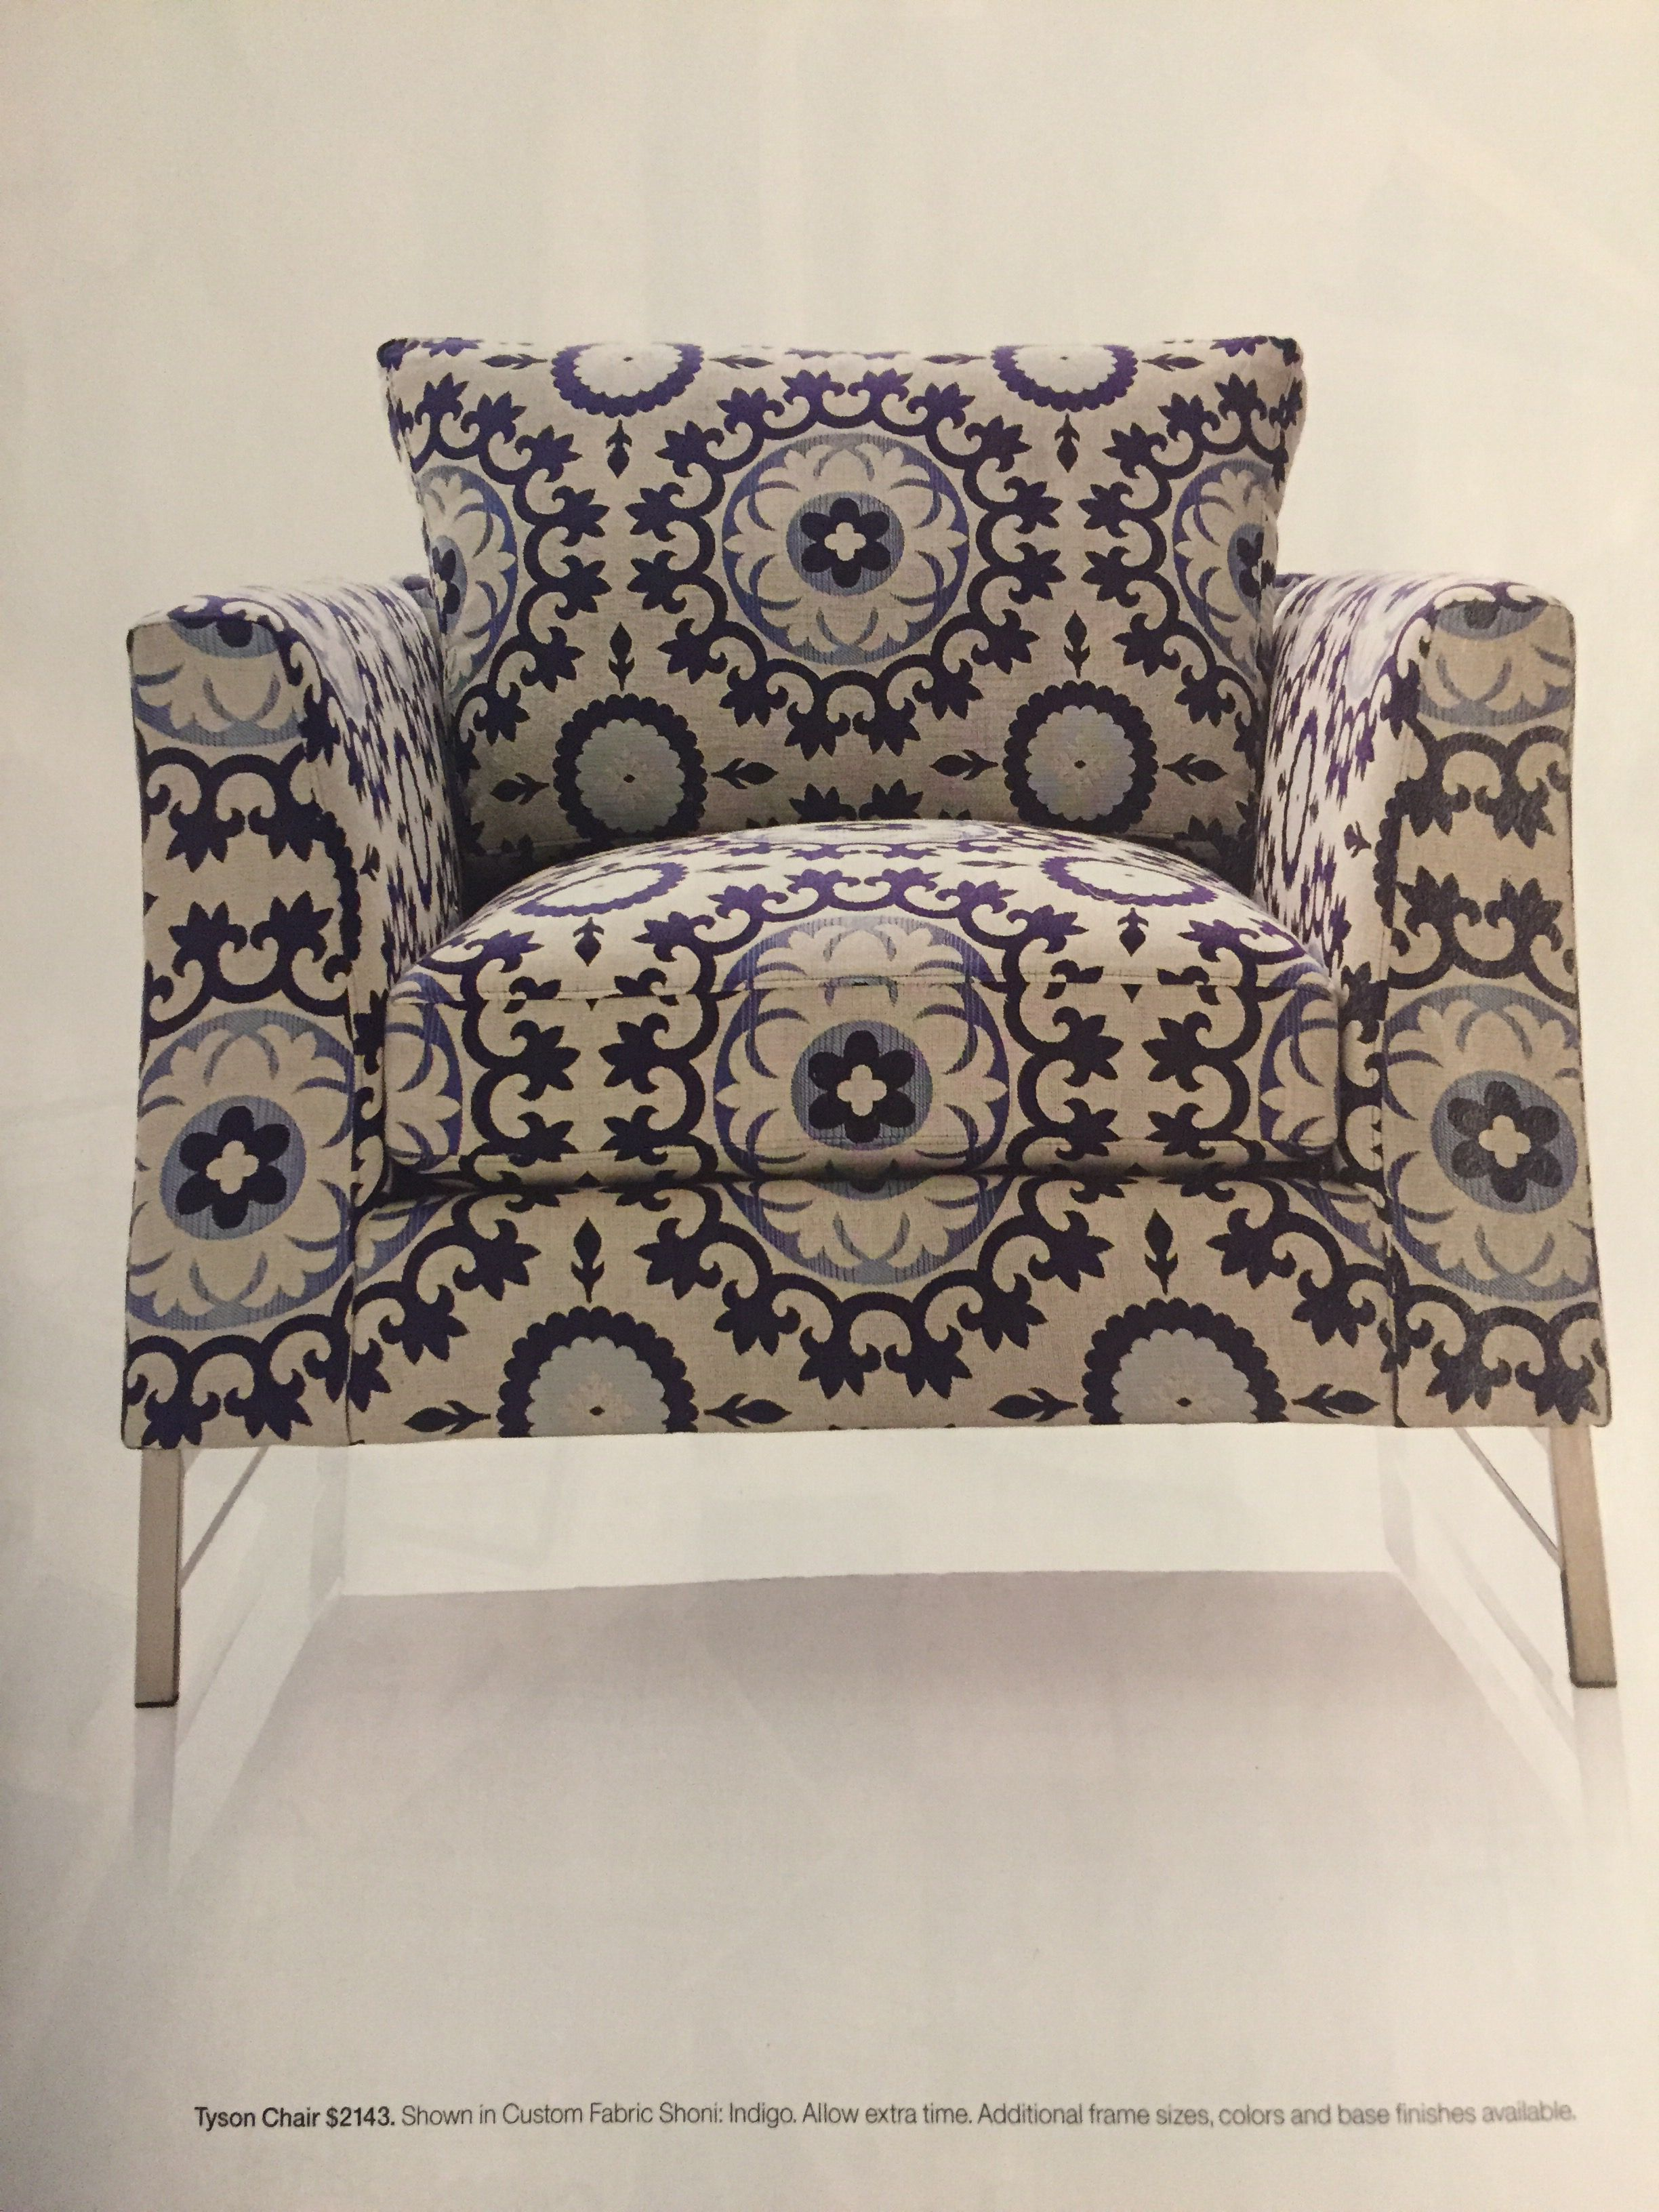 Tyson Chair in custom fabric Shoni Indigo from Crate and